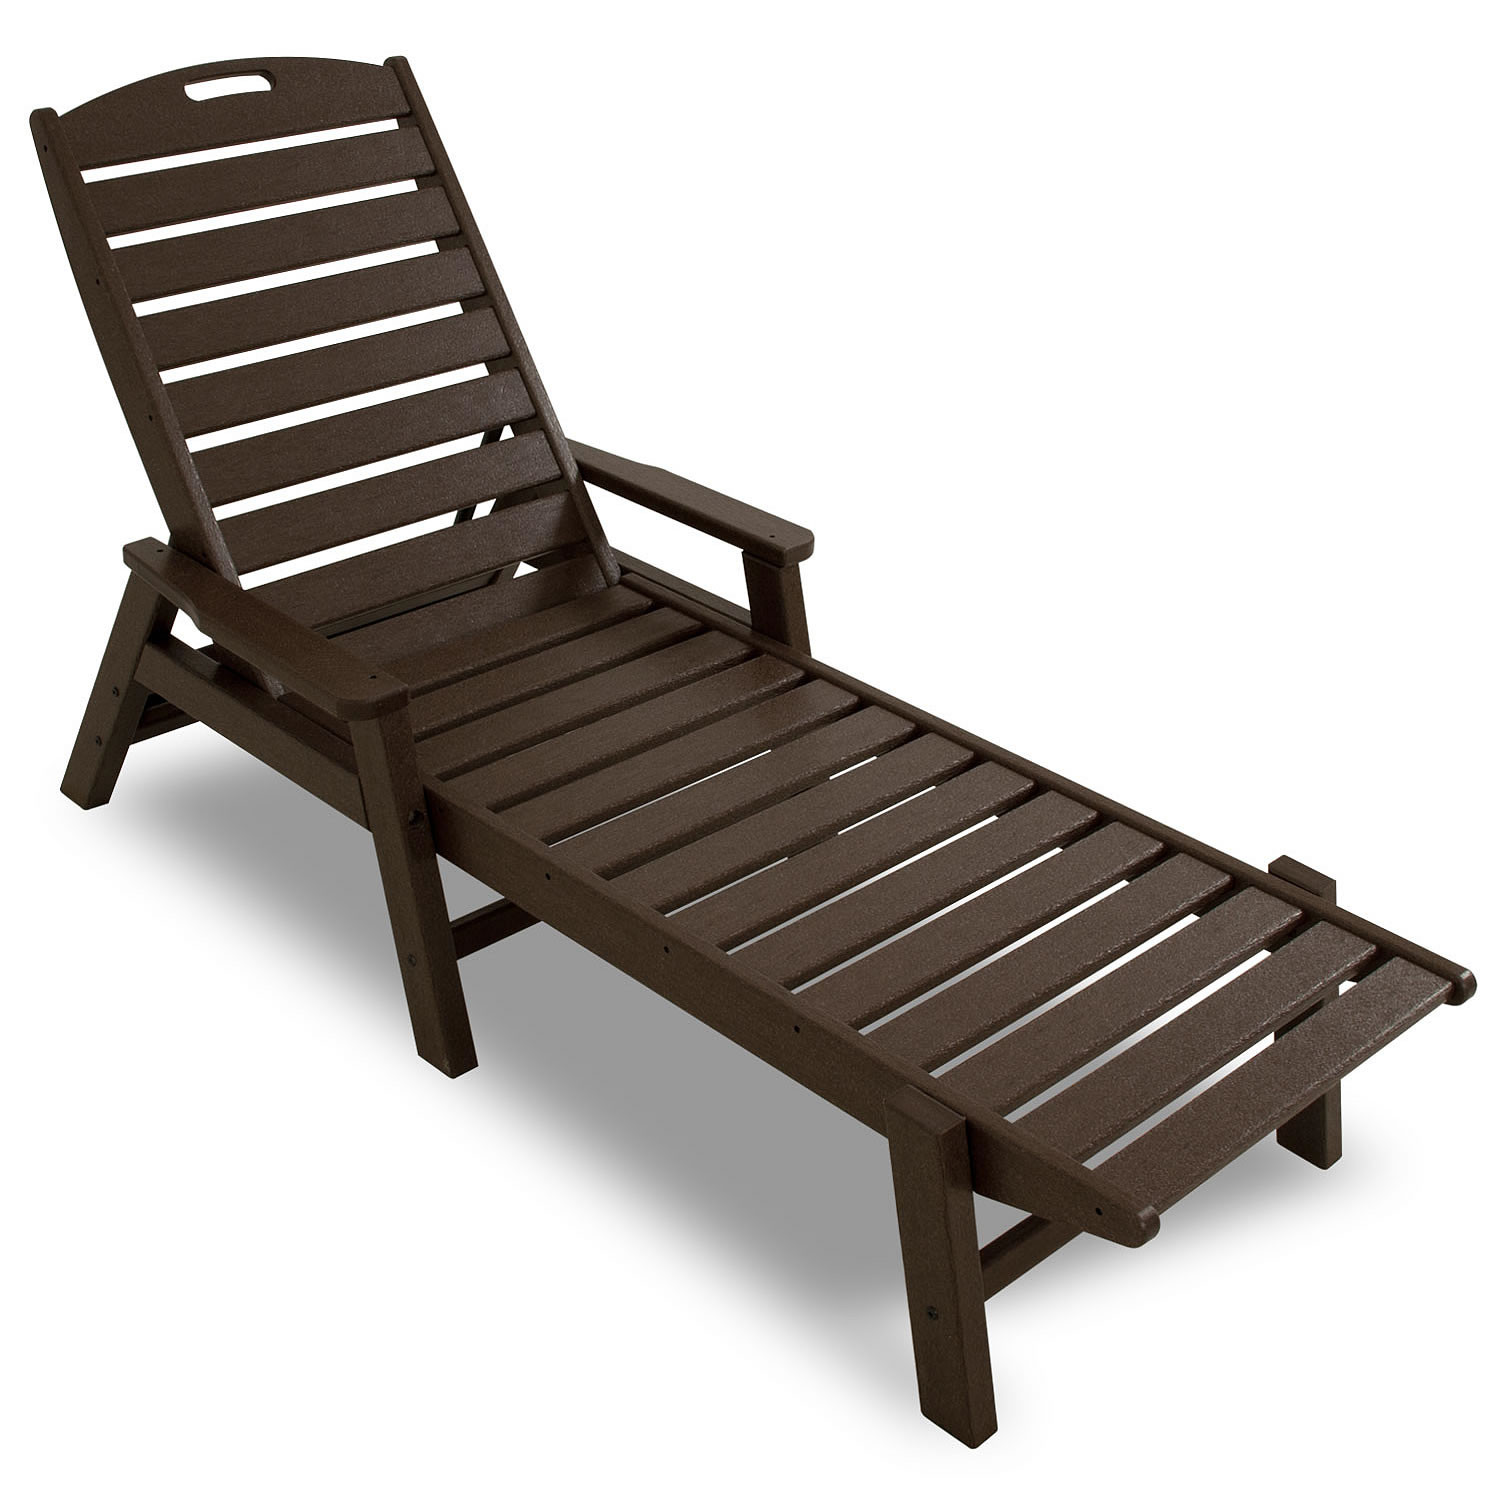 POLYWOOD Nautical Chaise Lounge Chaise Lounge Chairs Chairs